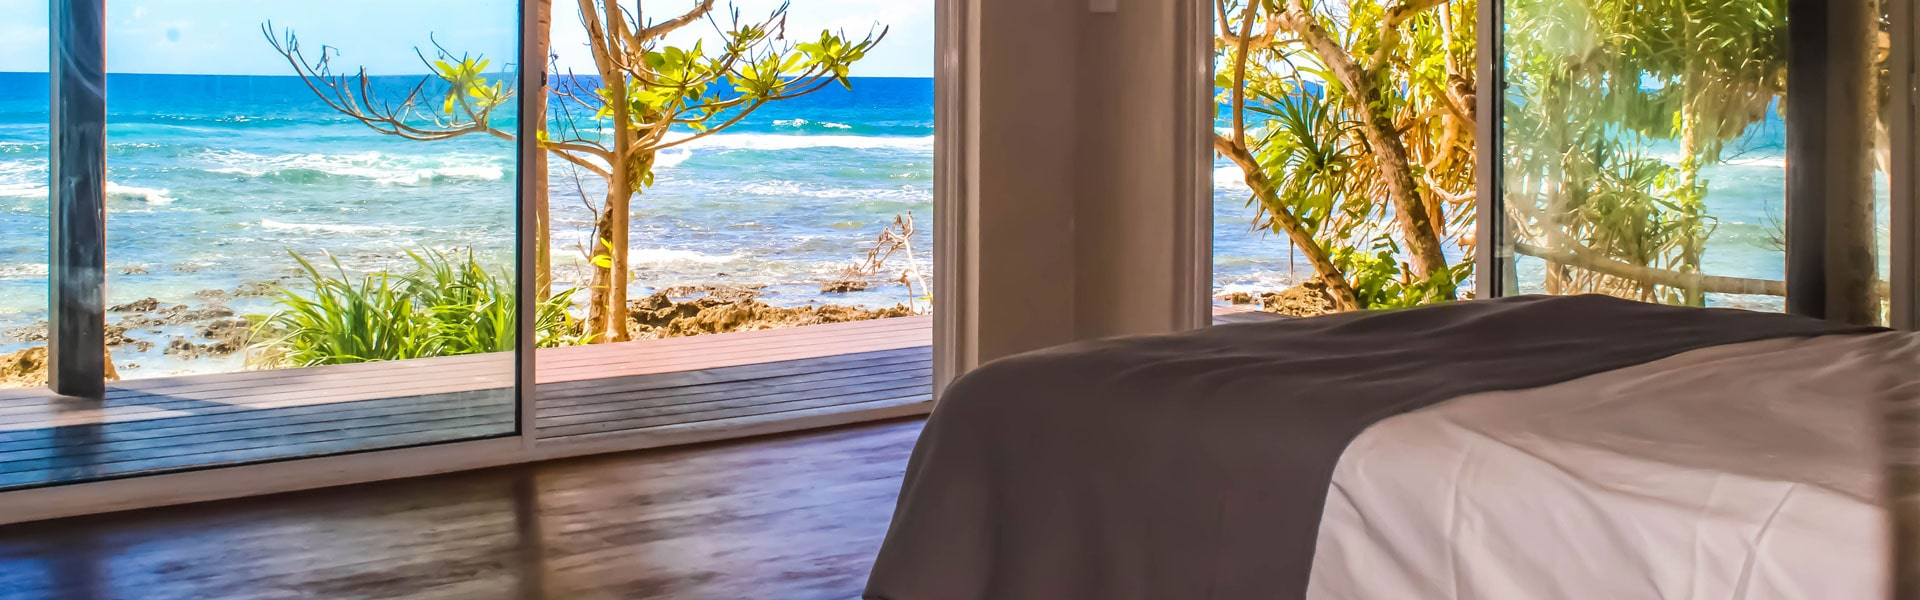 Dany-Island-April-2019-Bedroom-View